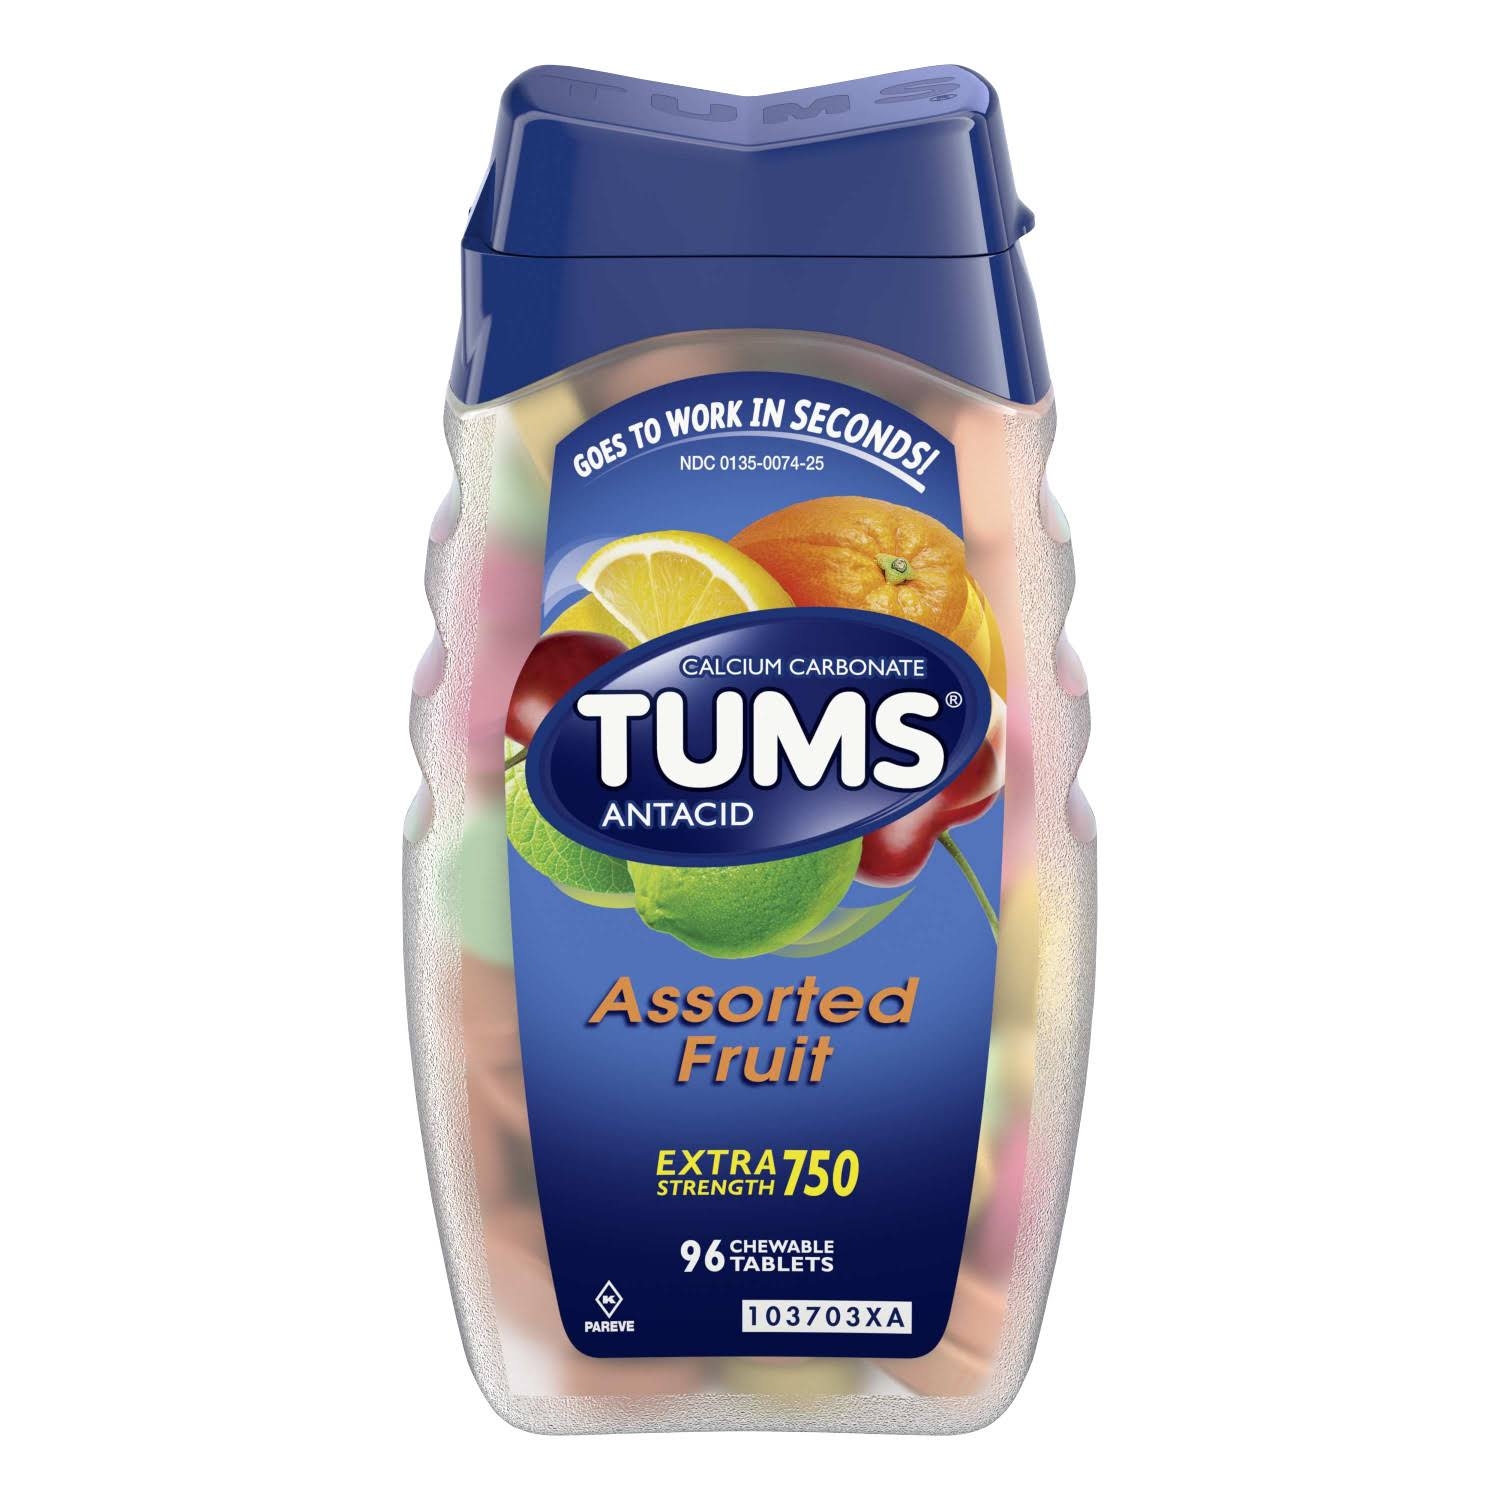 Tums Antacid Plus Calcium Supplement - Assorted Fruit, 96 Tablets